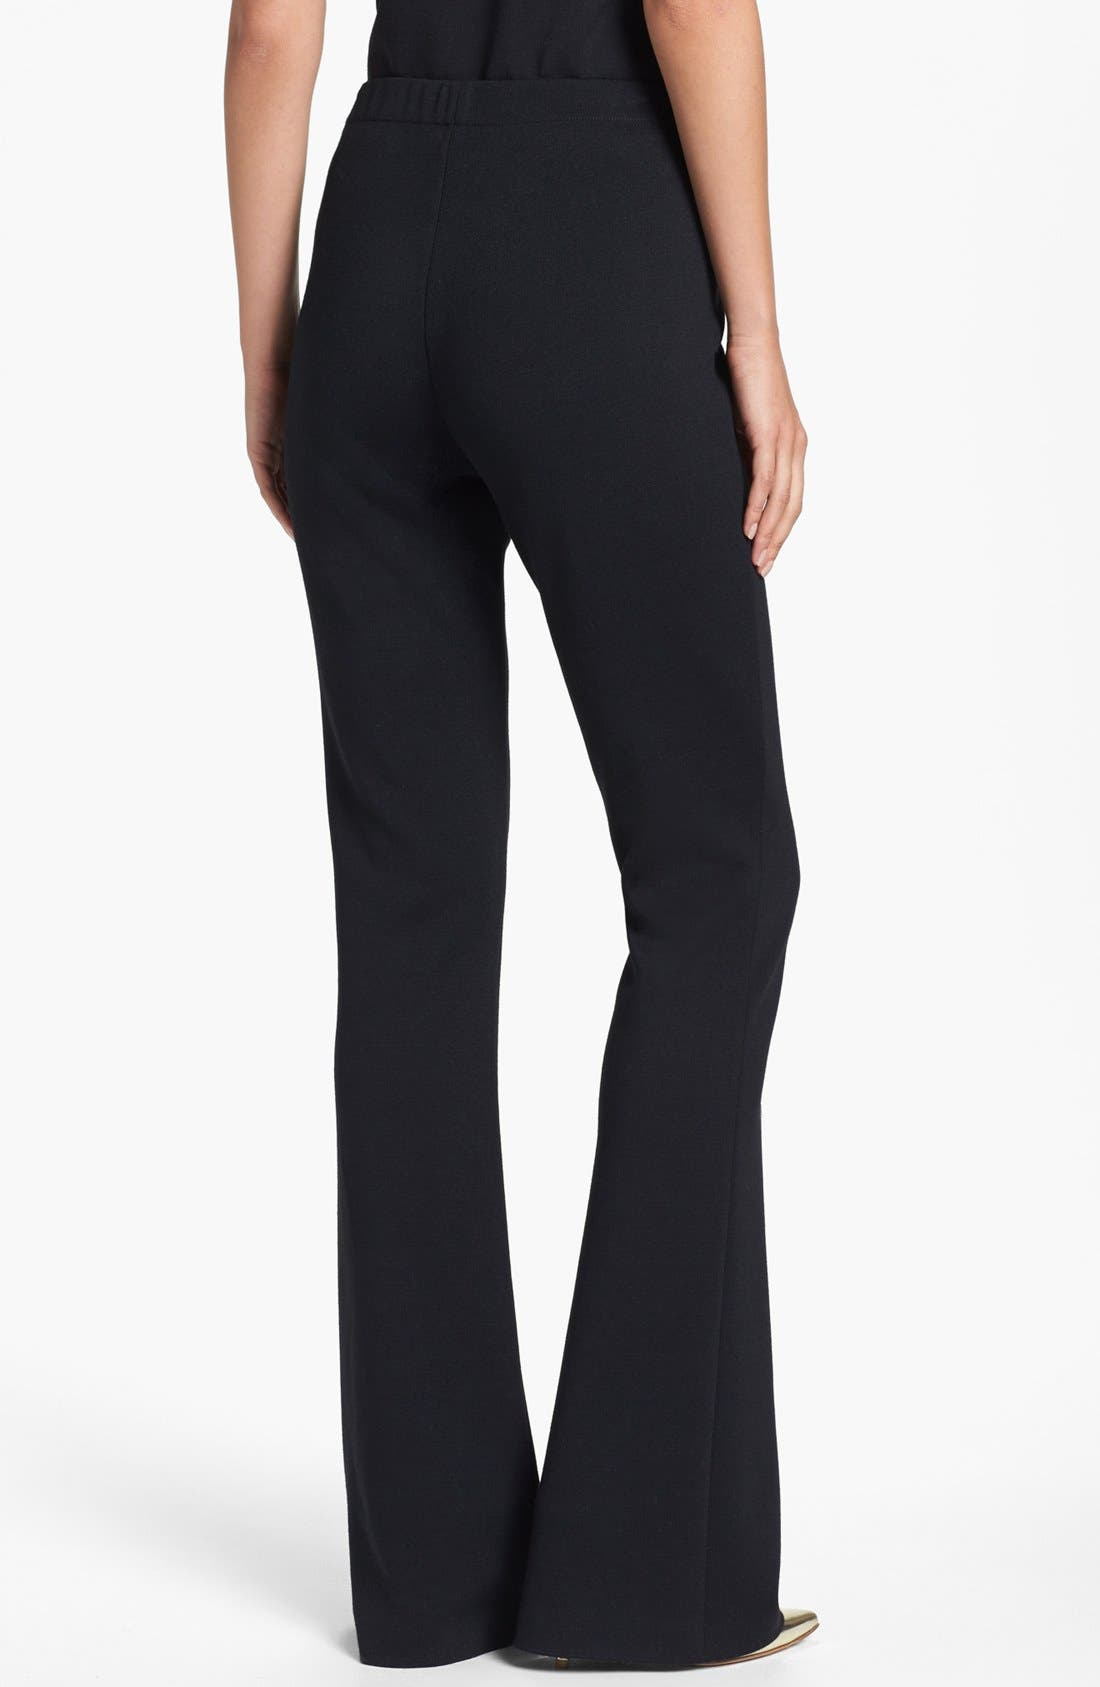 ST. JOHN COLLECTION, 'Kasia' Bootcut Milano Knit Pants, Alternate thumbnail 5, color, CAVIAR